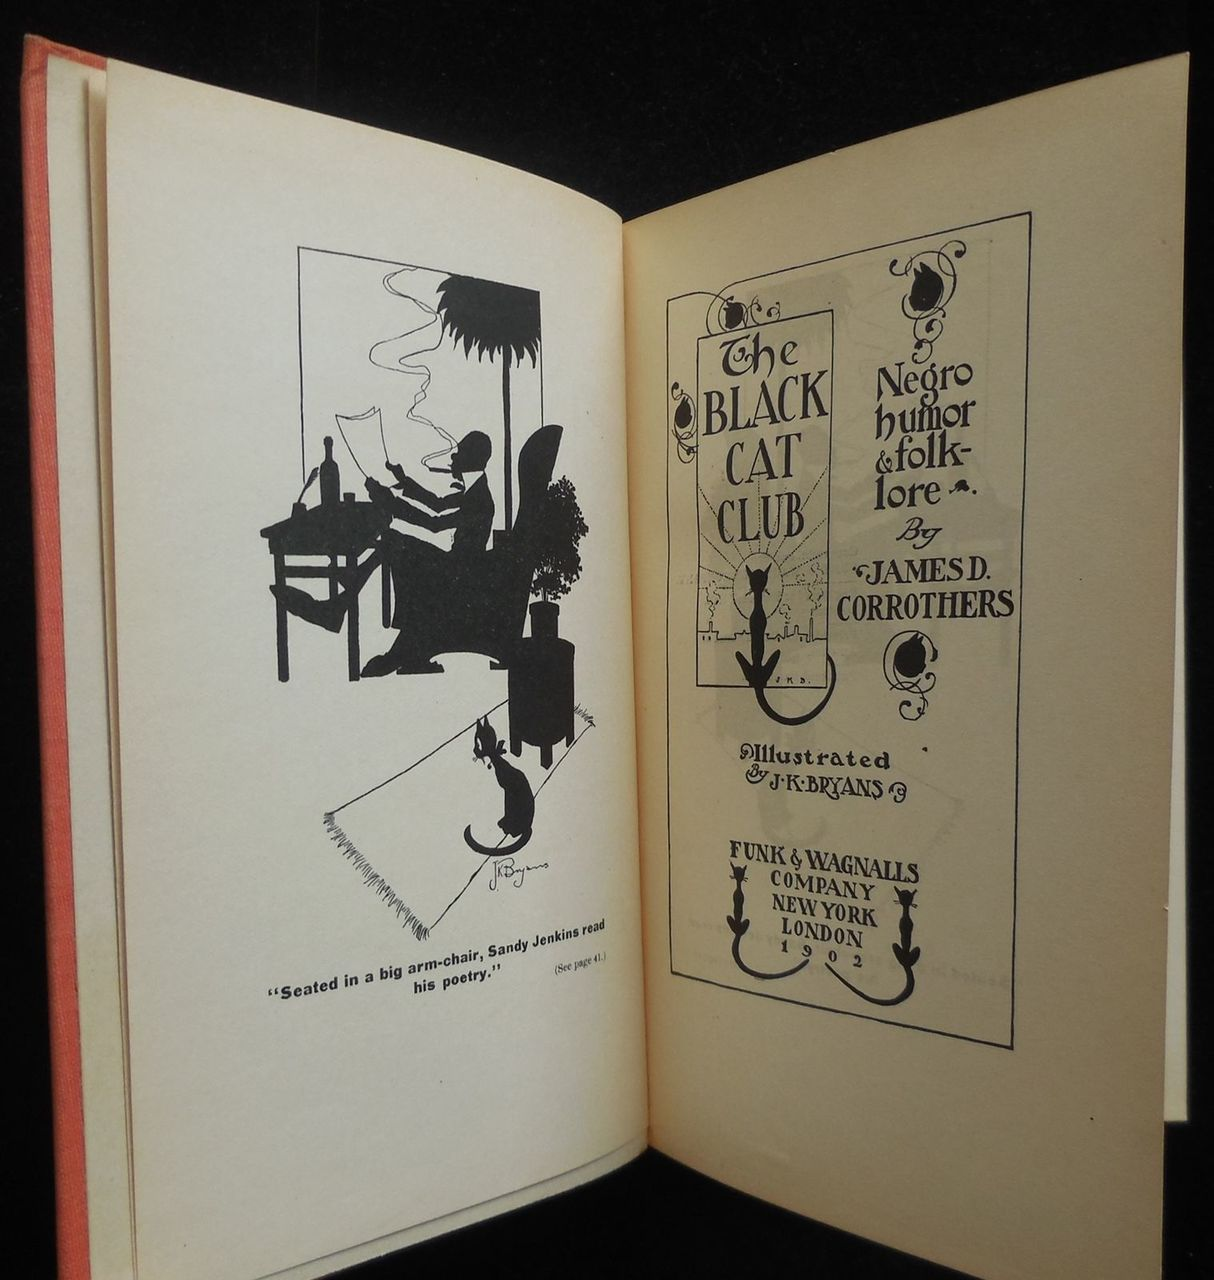 THE BLACK CAT CLUB: NEGRO HUMOR AND FOLKLORE Corrothers 1902 Black Americana